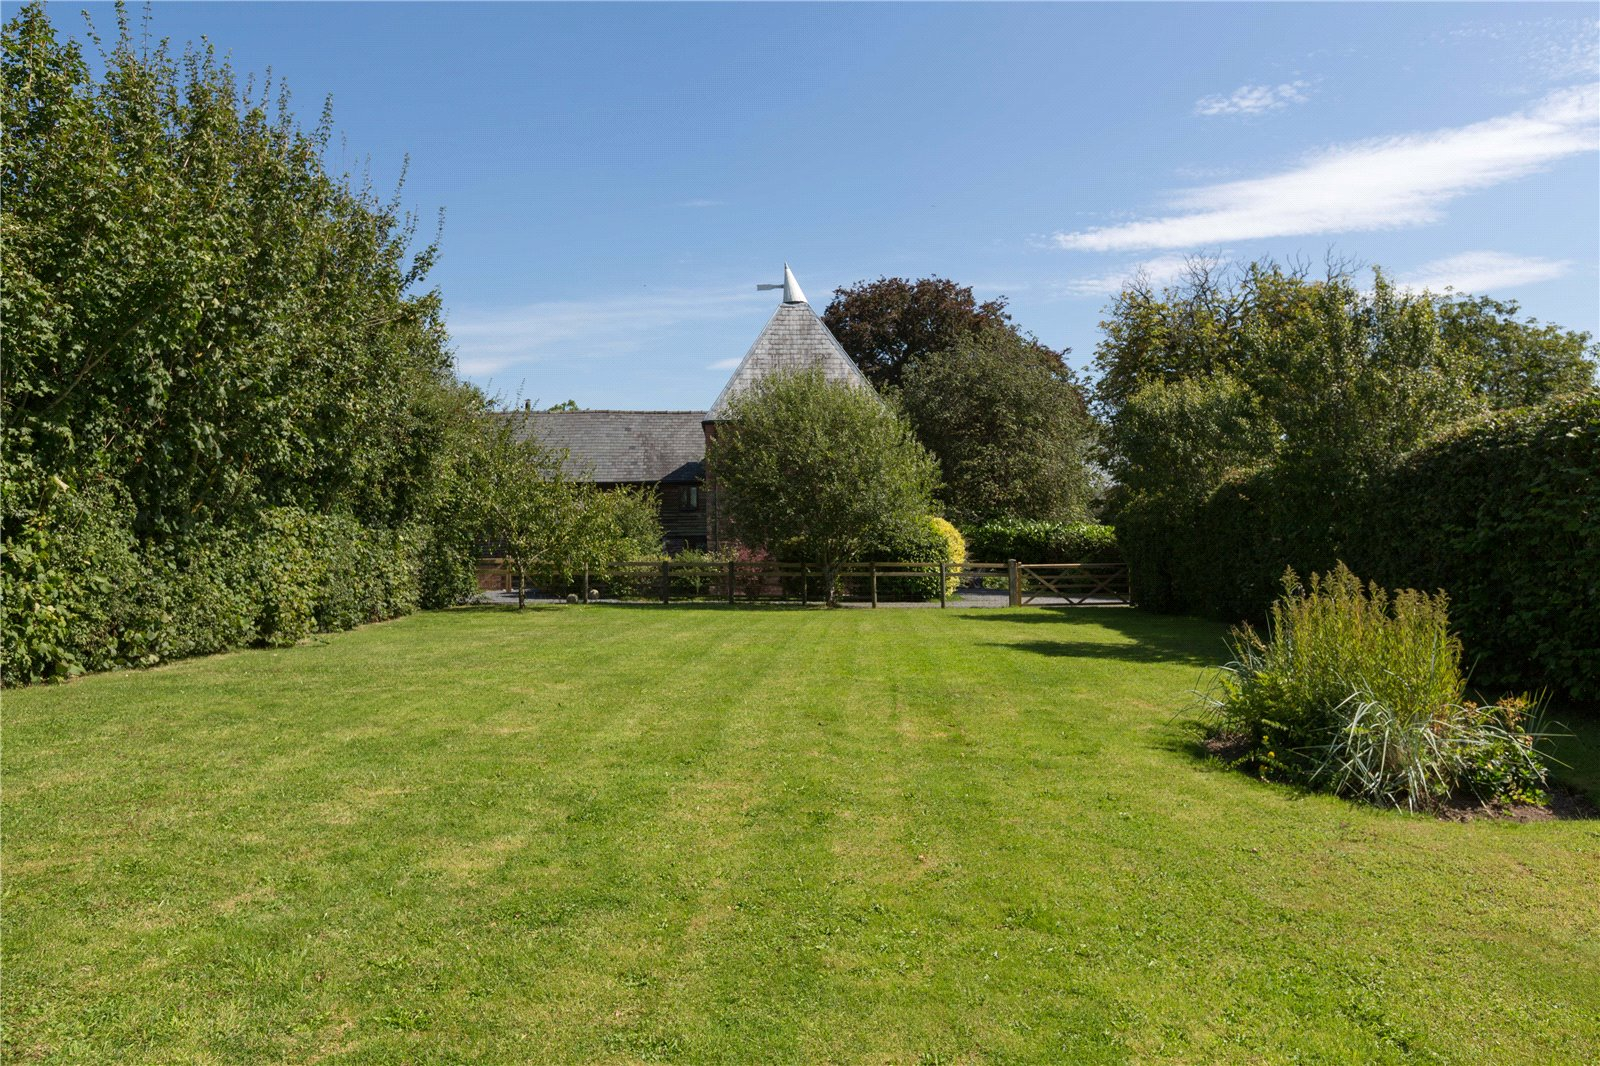 The Oast House, Tunnel Lane, Orleton, Herefordshire, SY8